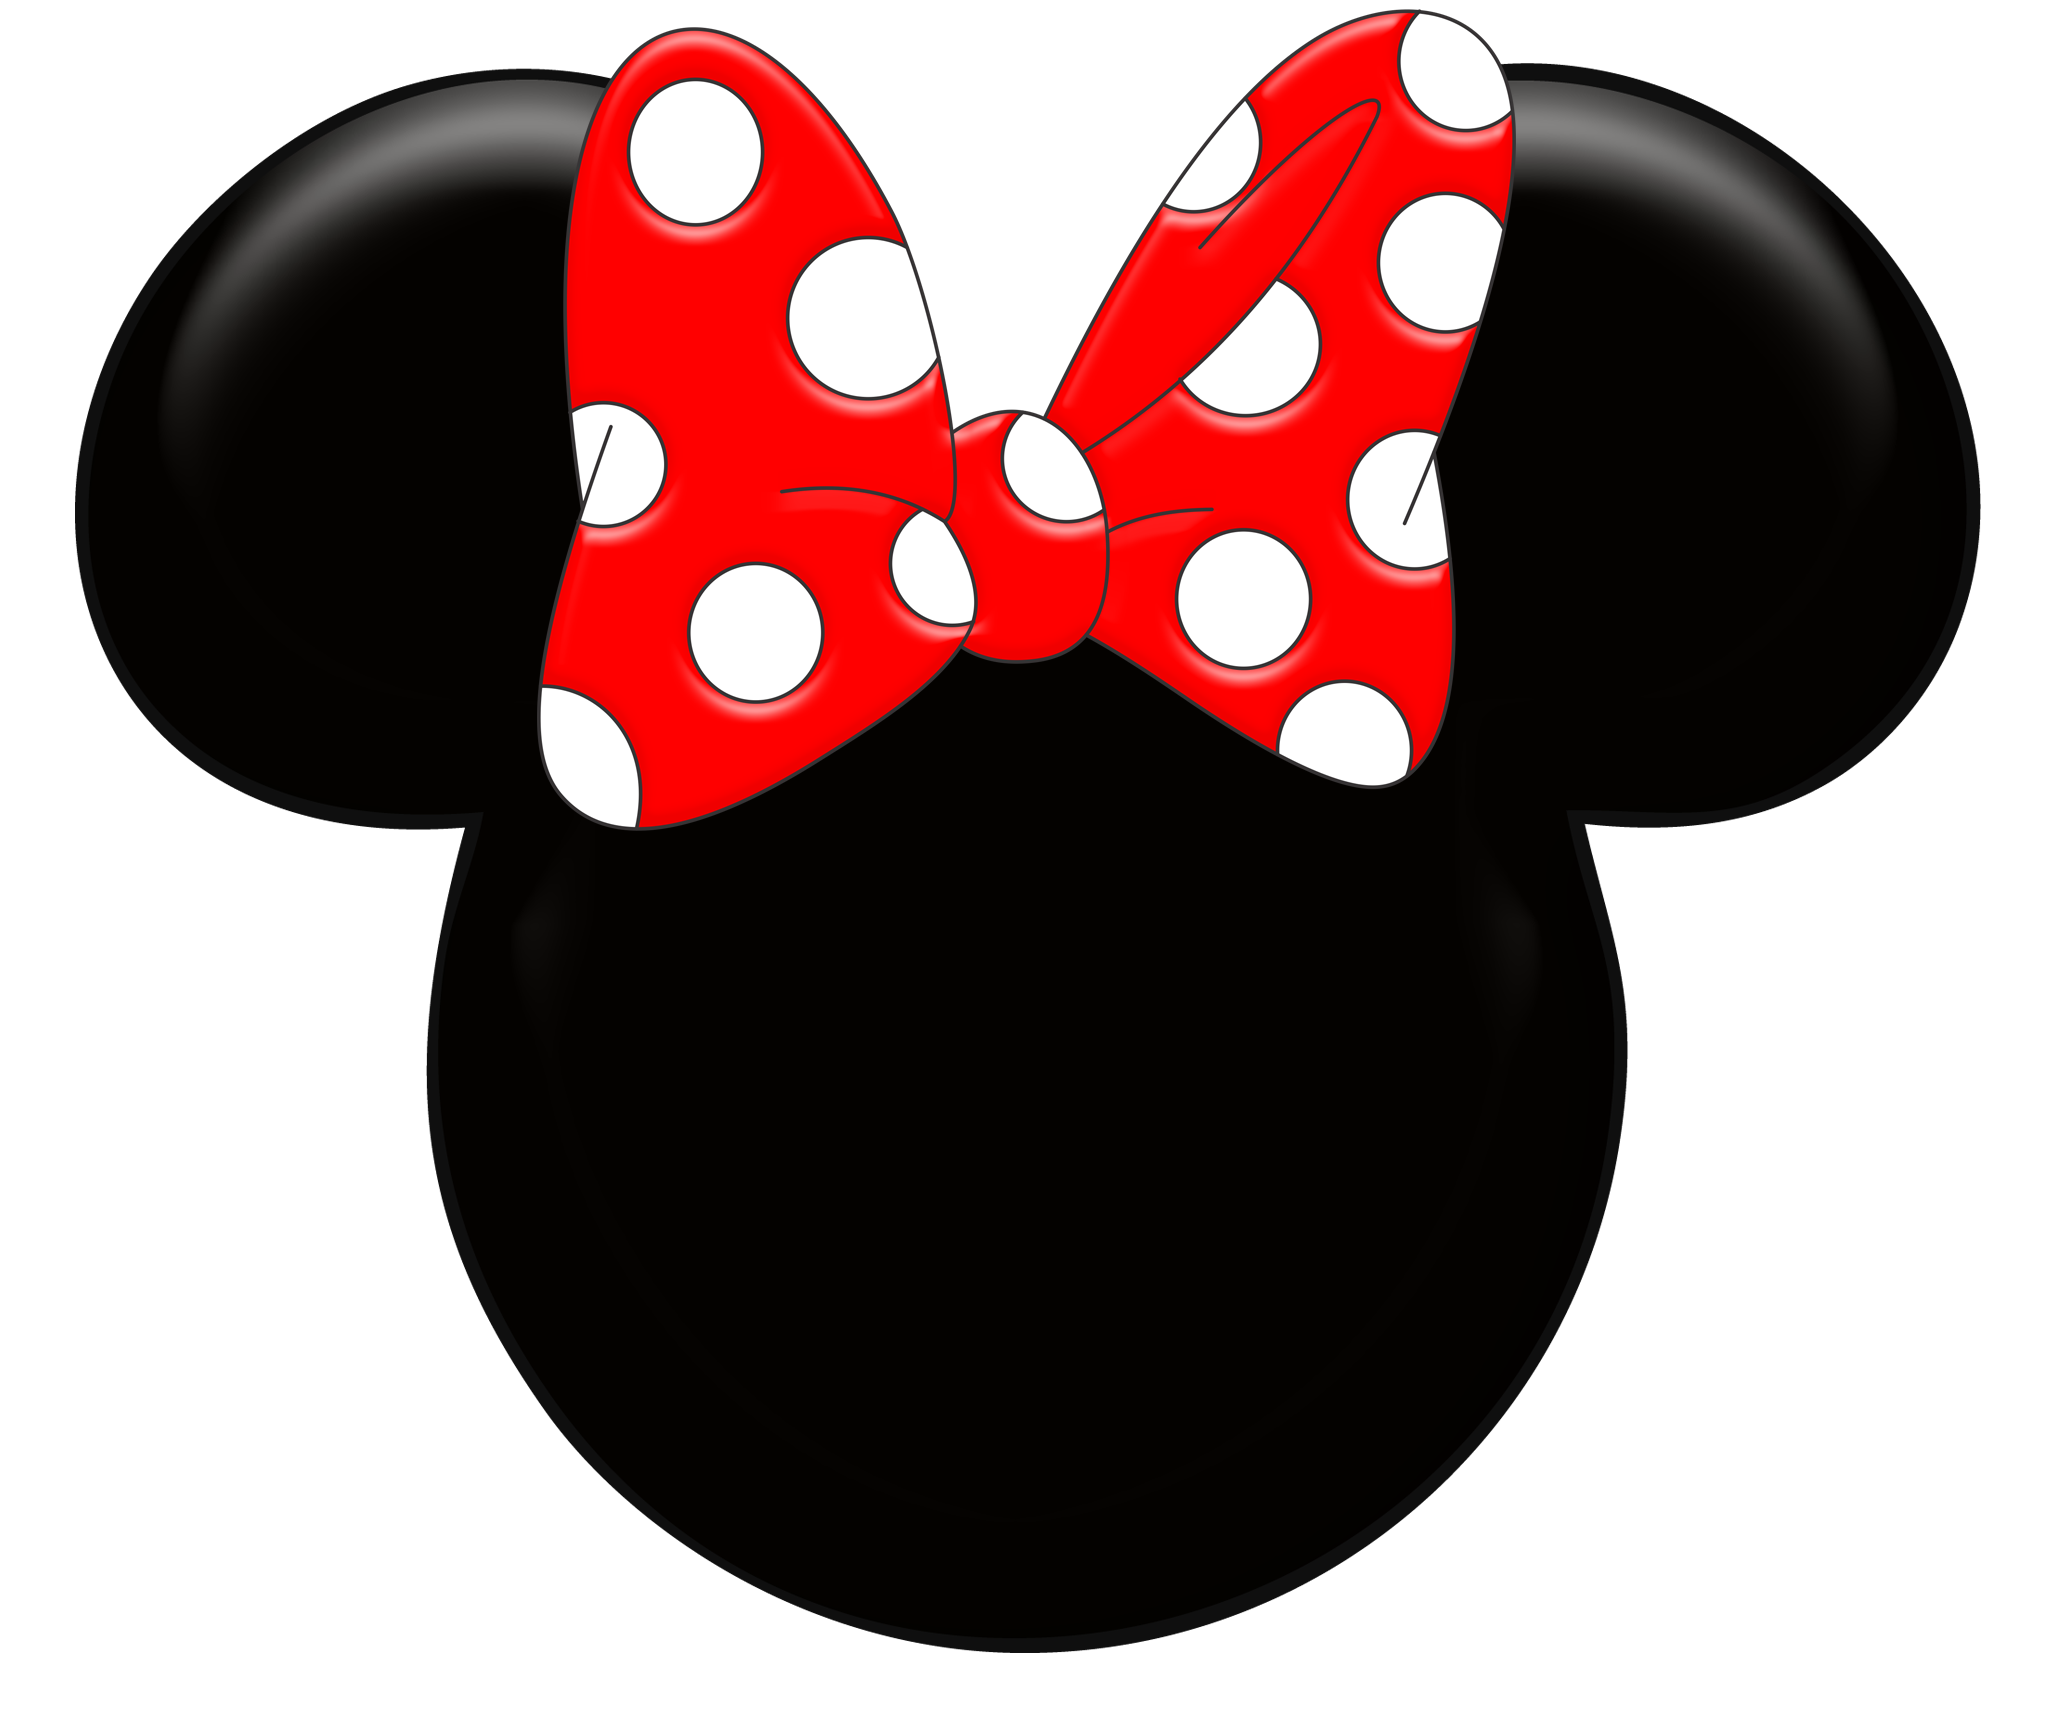 2054x1716 Images For gt Minnie Mouse Png cumple sayri Pinterest Minnie